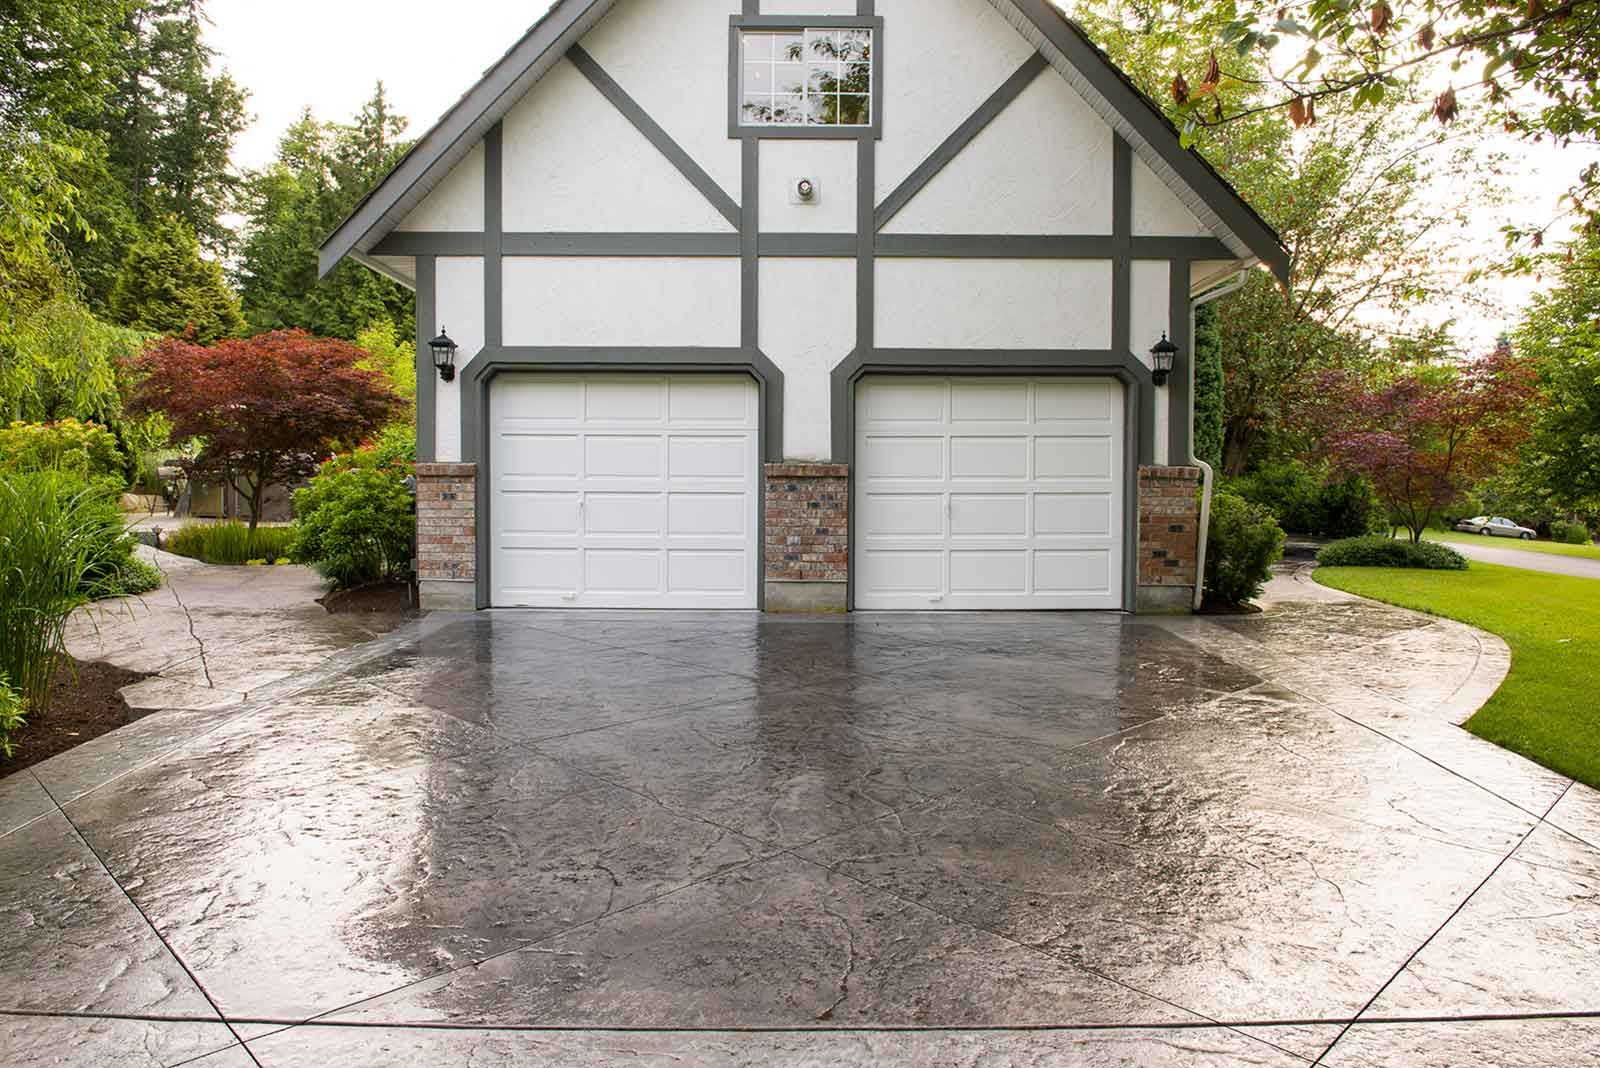 Driveway done in concrete pavers